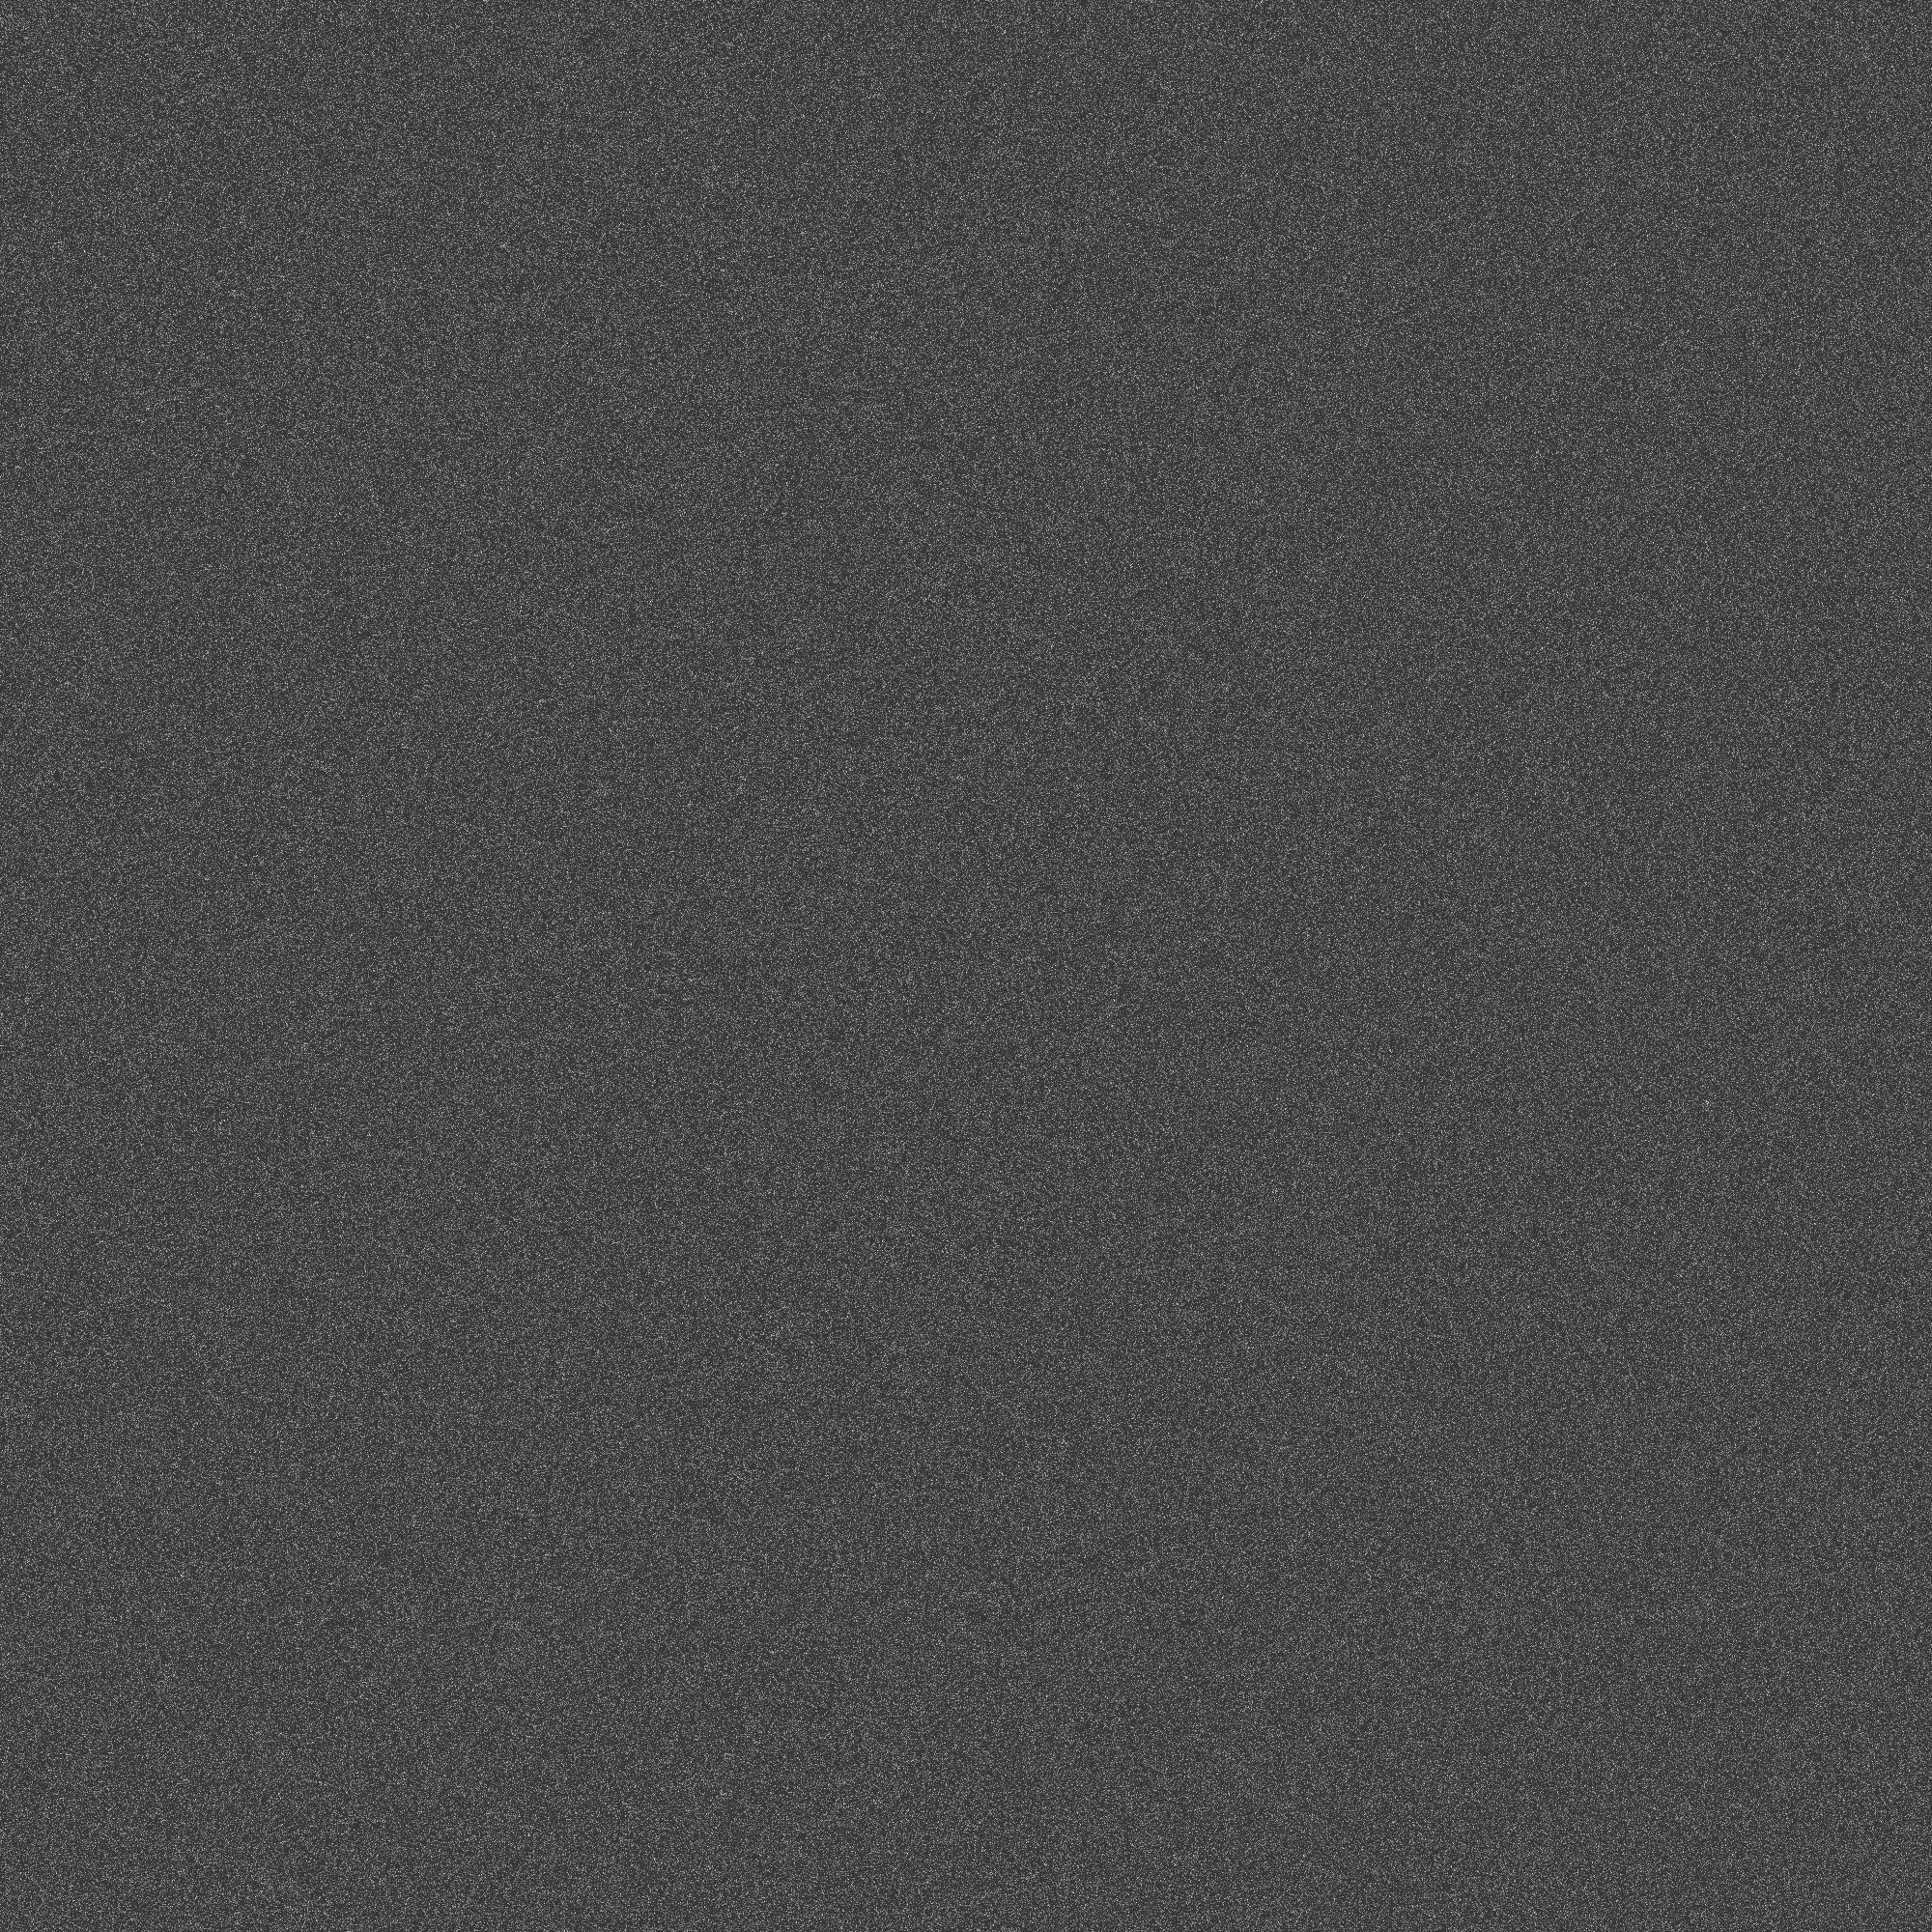 noize_background_gray